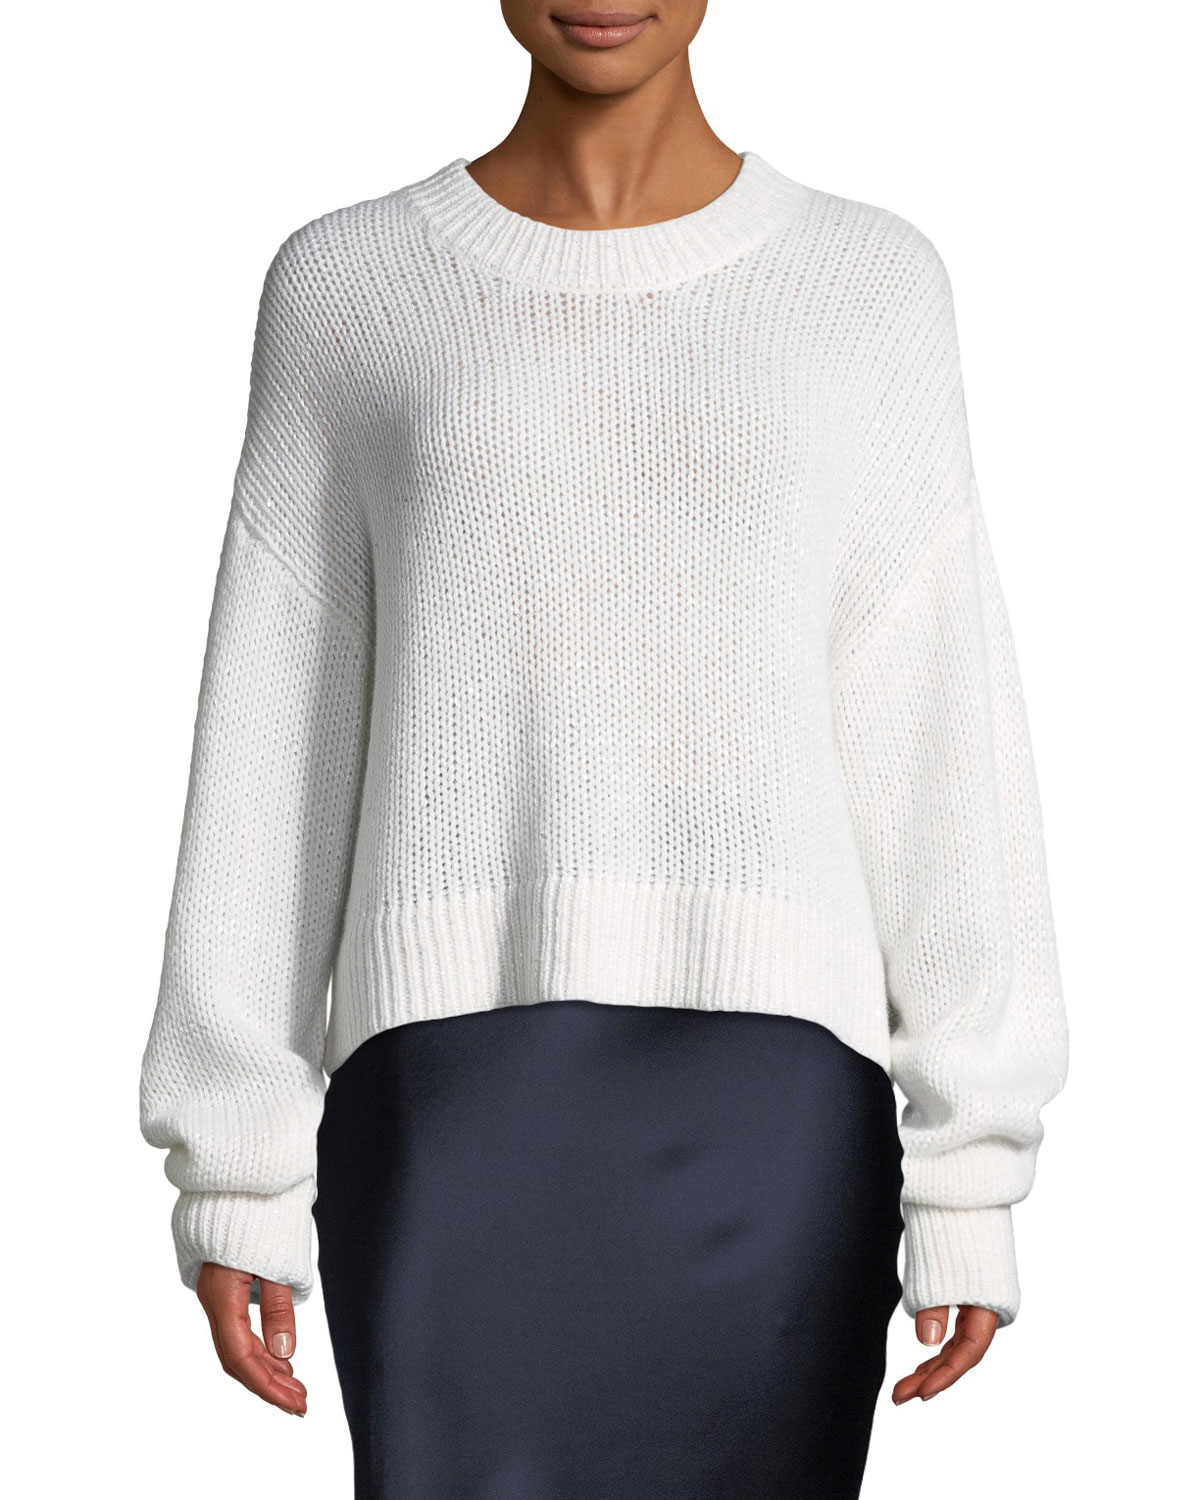 SABLYN Mercy Cashmere Pullover Sweater in White